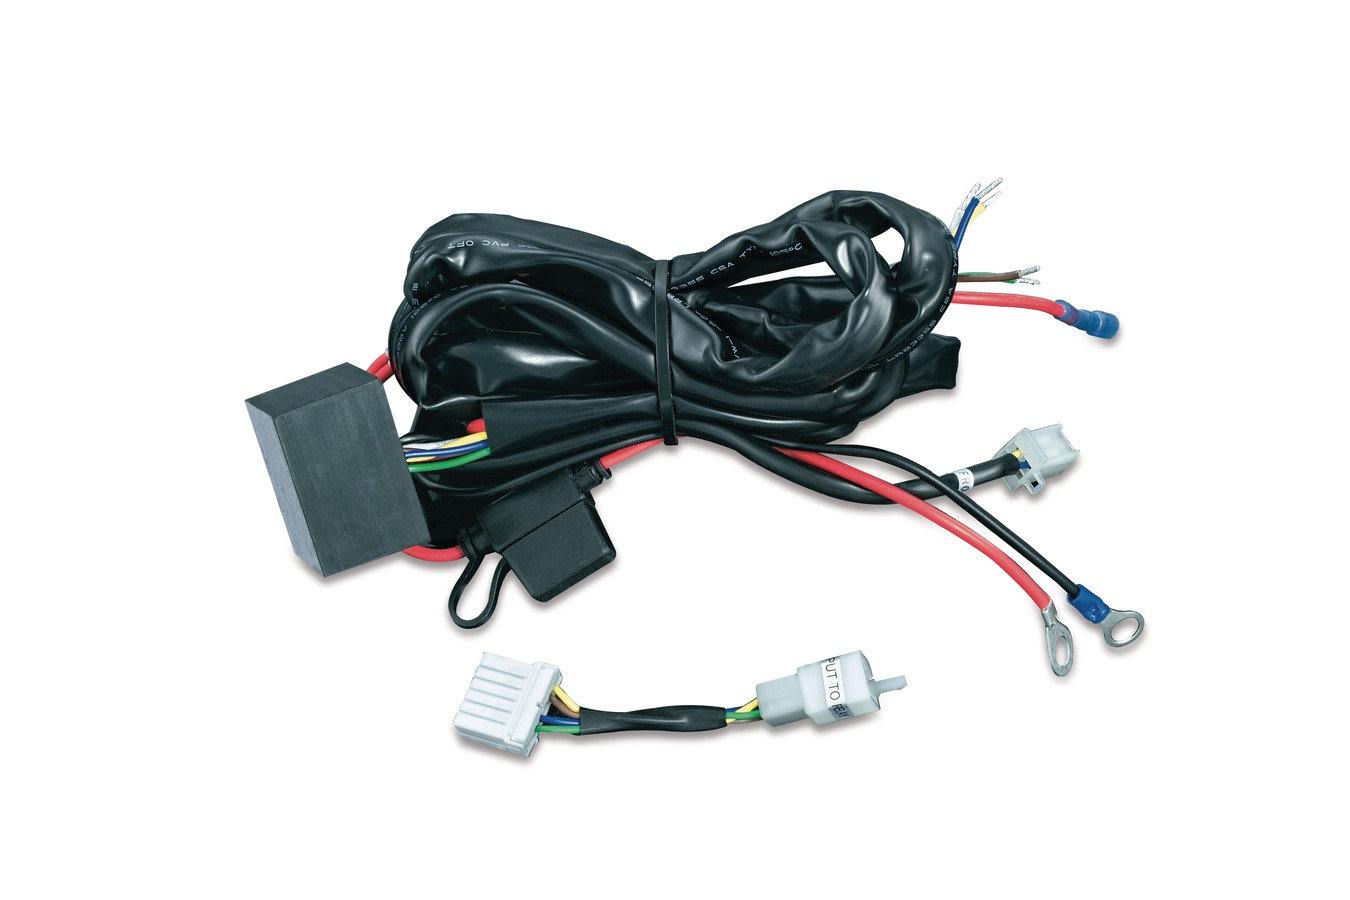 Trailer Wiring Harnesses | Trailer Hitches & Wiring | Touring - Harley Trailer Wiring Diagram